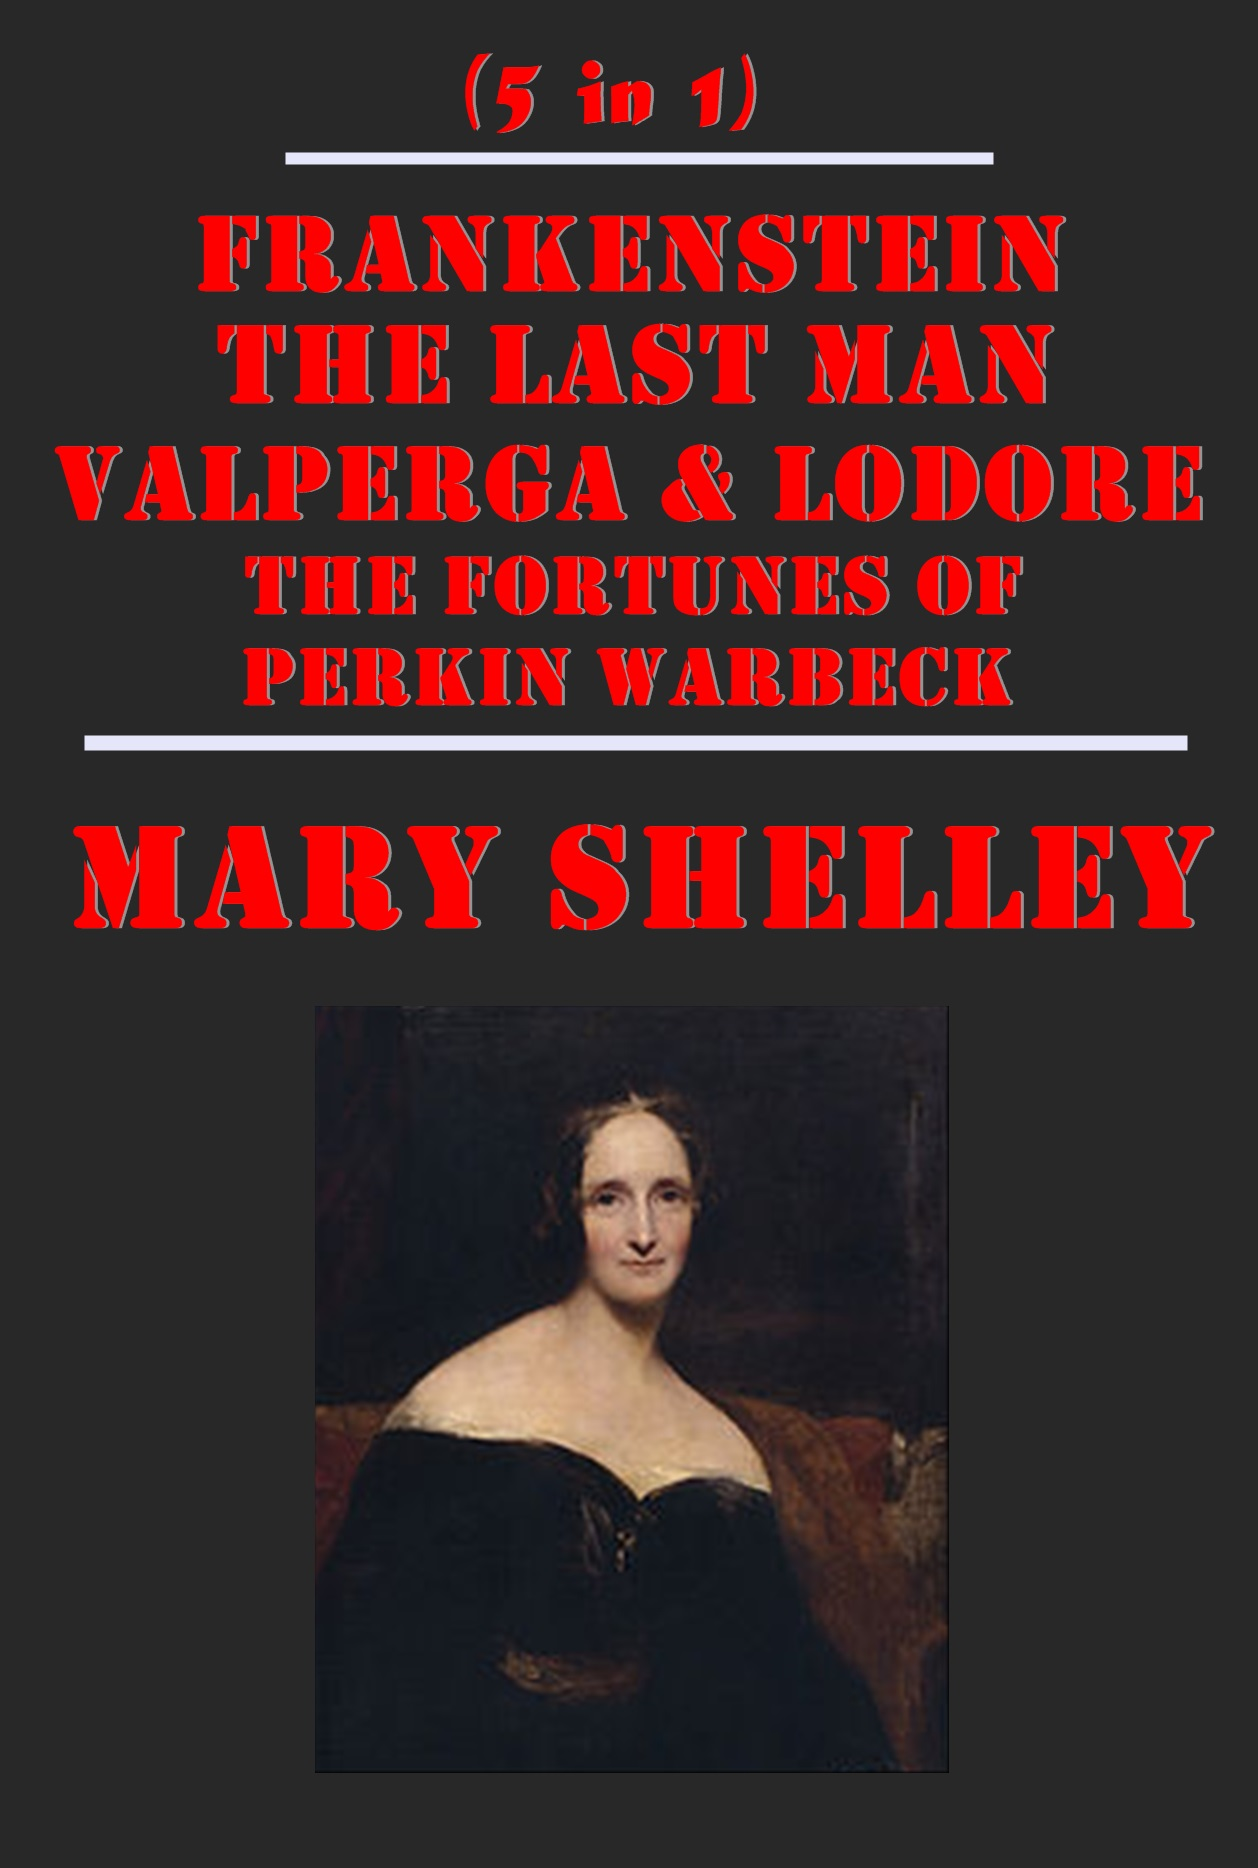 Mary Shelley - The Complete Horror Gothic Romance Anthologies of Mary Shelley